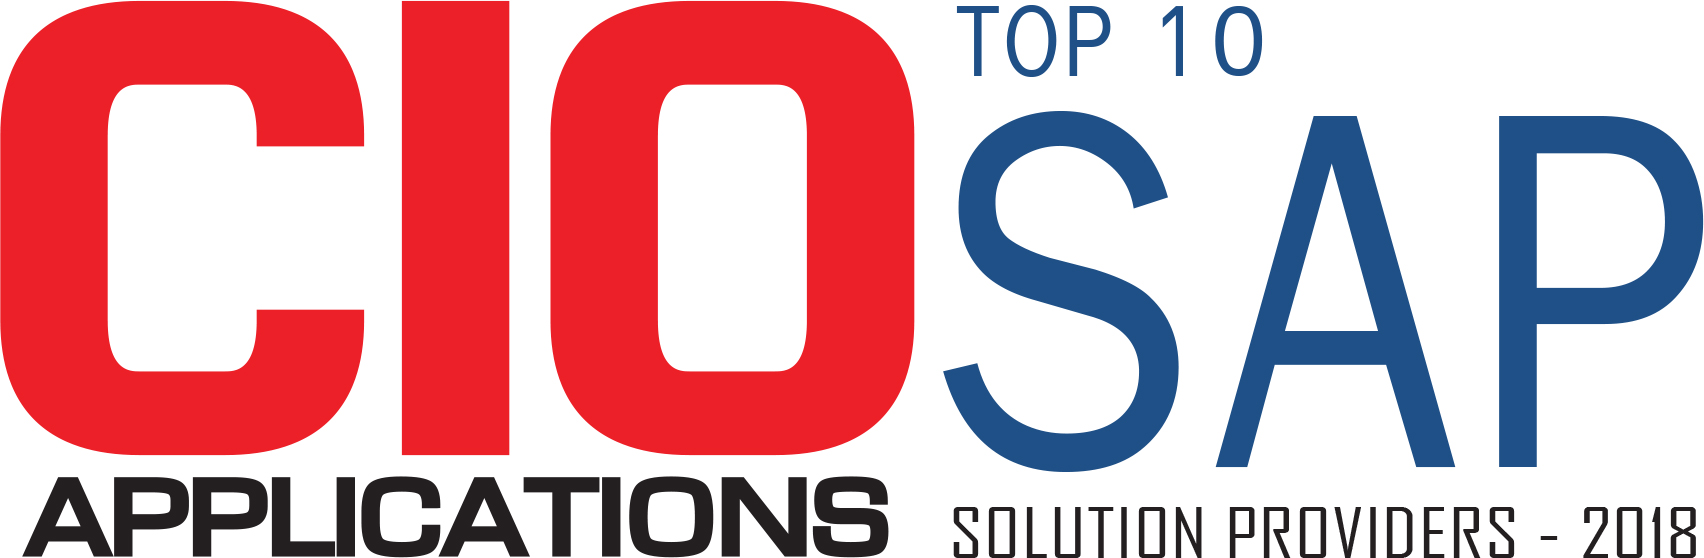 Top 10 SAP Solution Companies - 2018